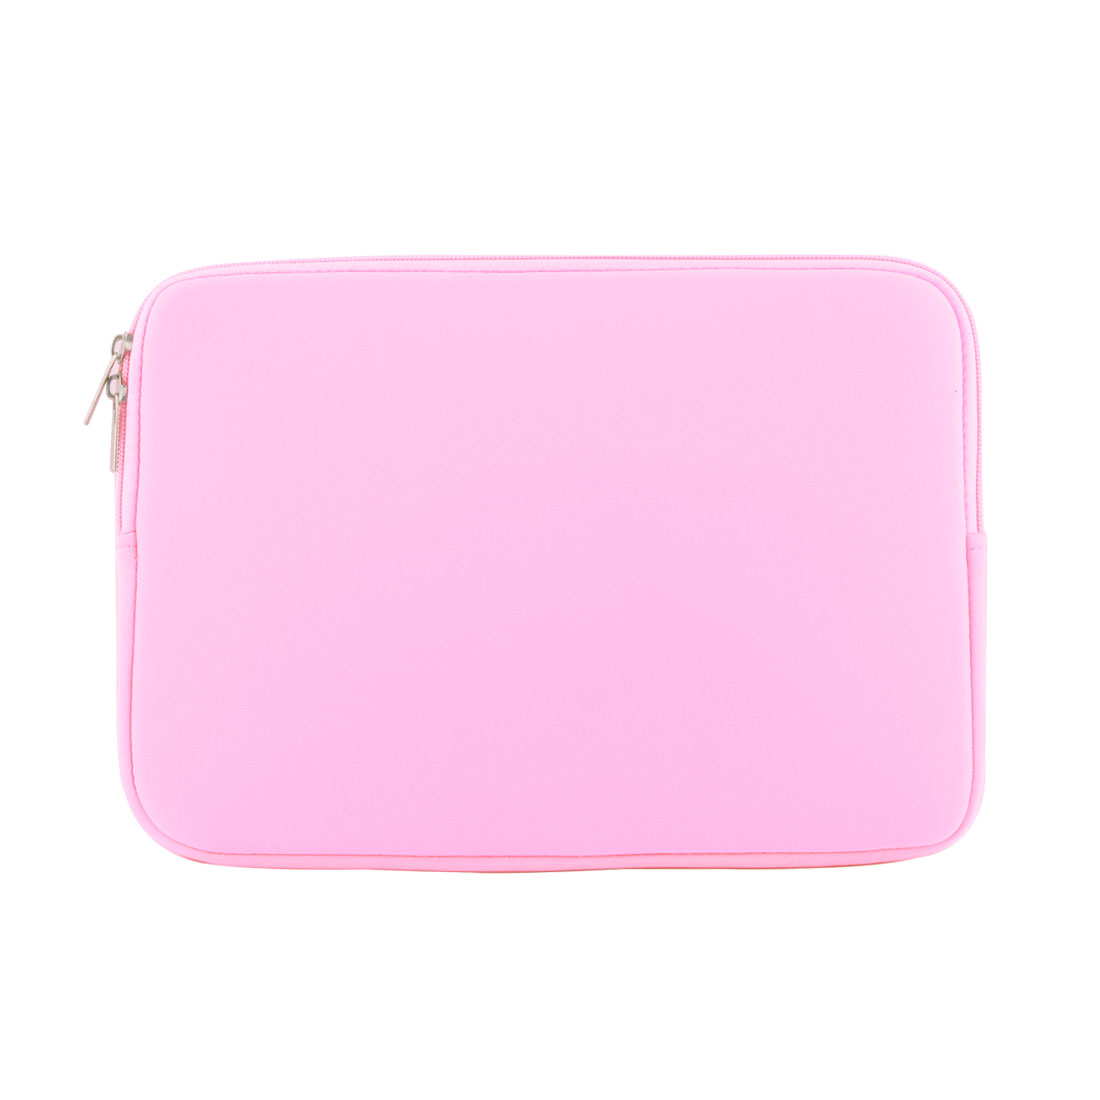 Office Computer Neoprene Dual Zipper Carry Pouch Laptop Sleeve Pink for MacBook Pro Air 12 Inch